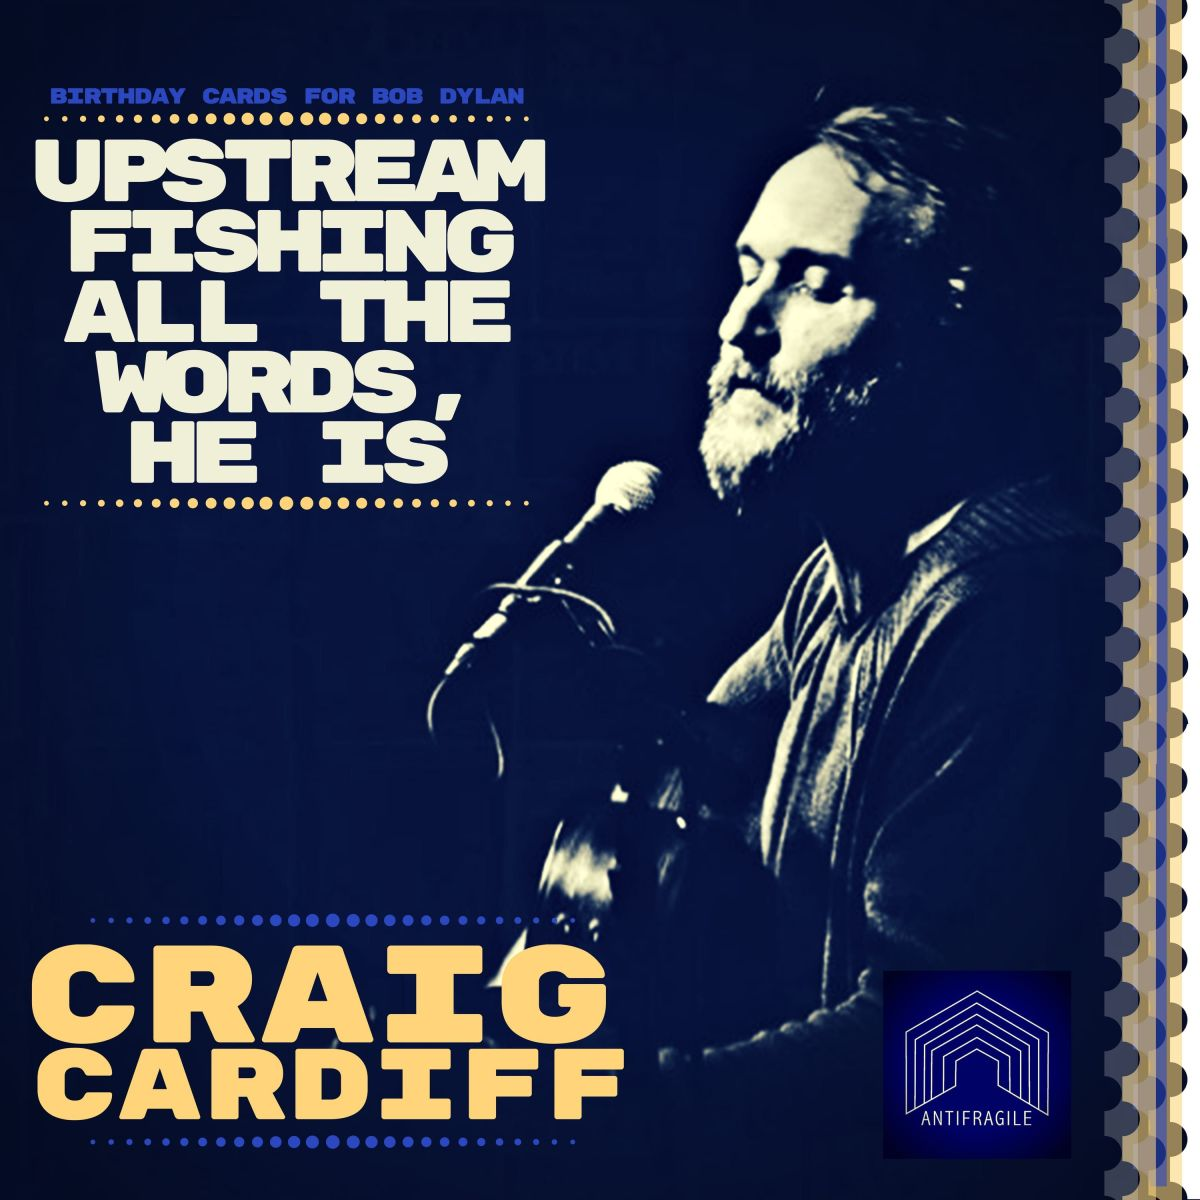 Craig Cardiff Stuns Listeners w Dylan Cover, Full EP of Bob's Songs Coming Thursday!